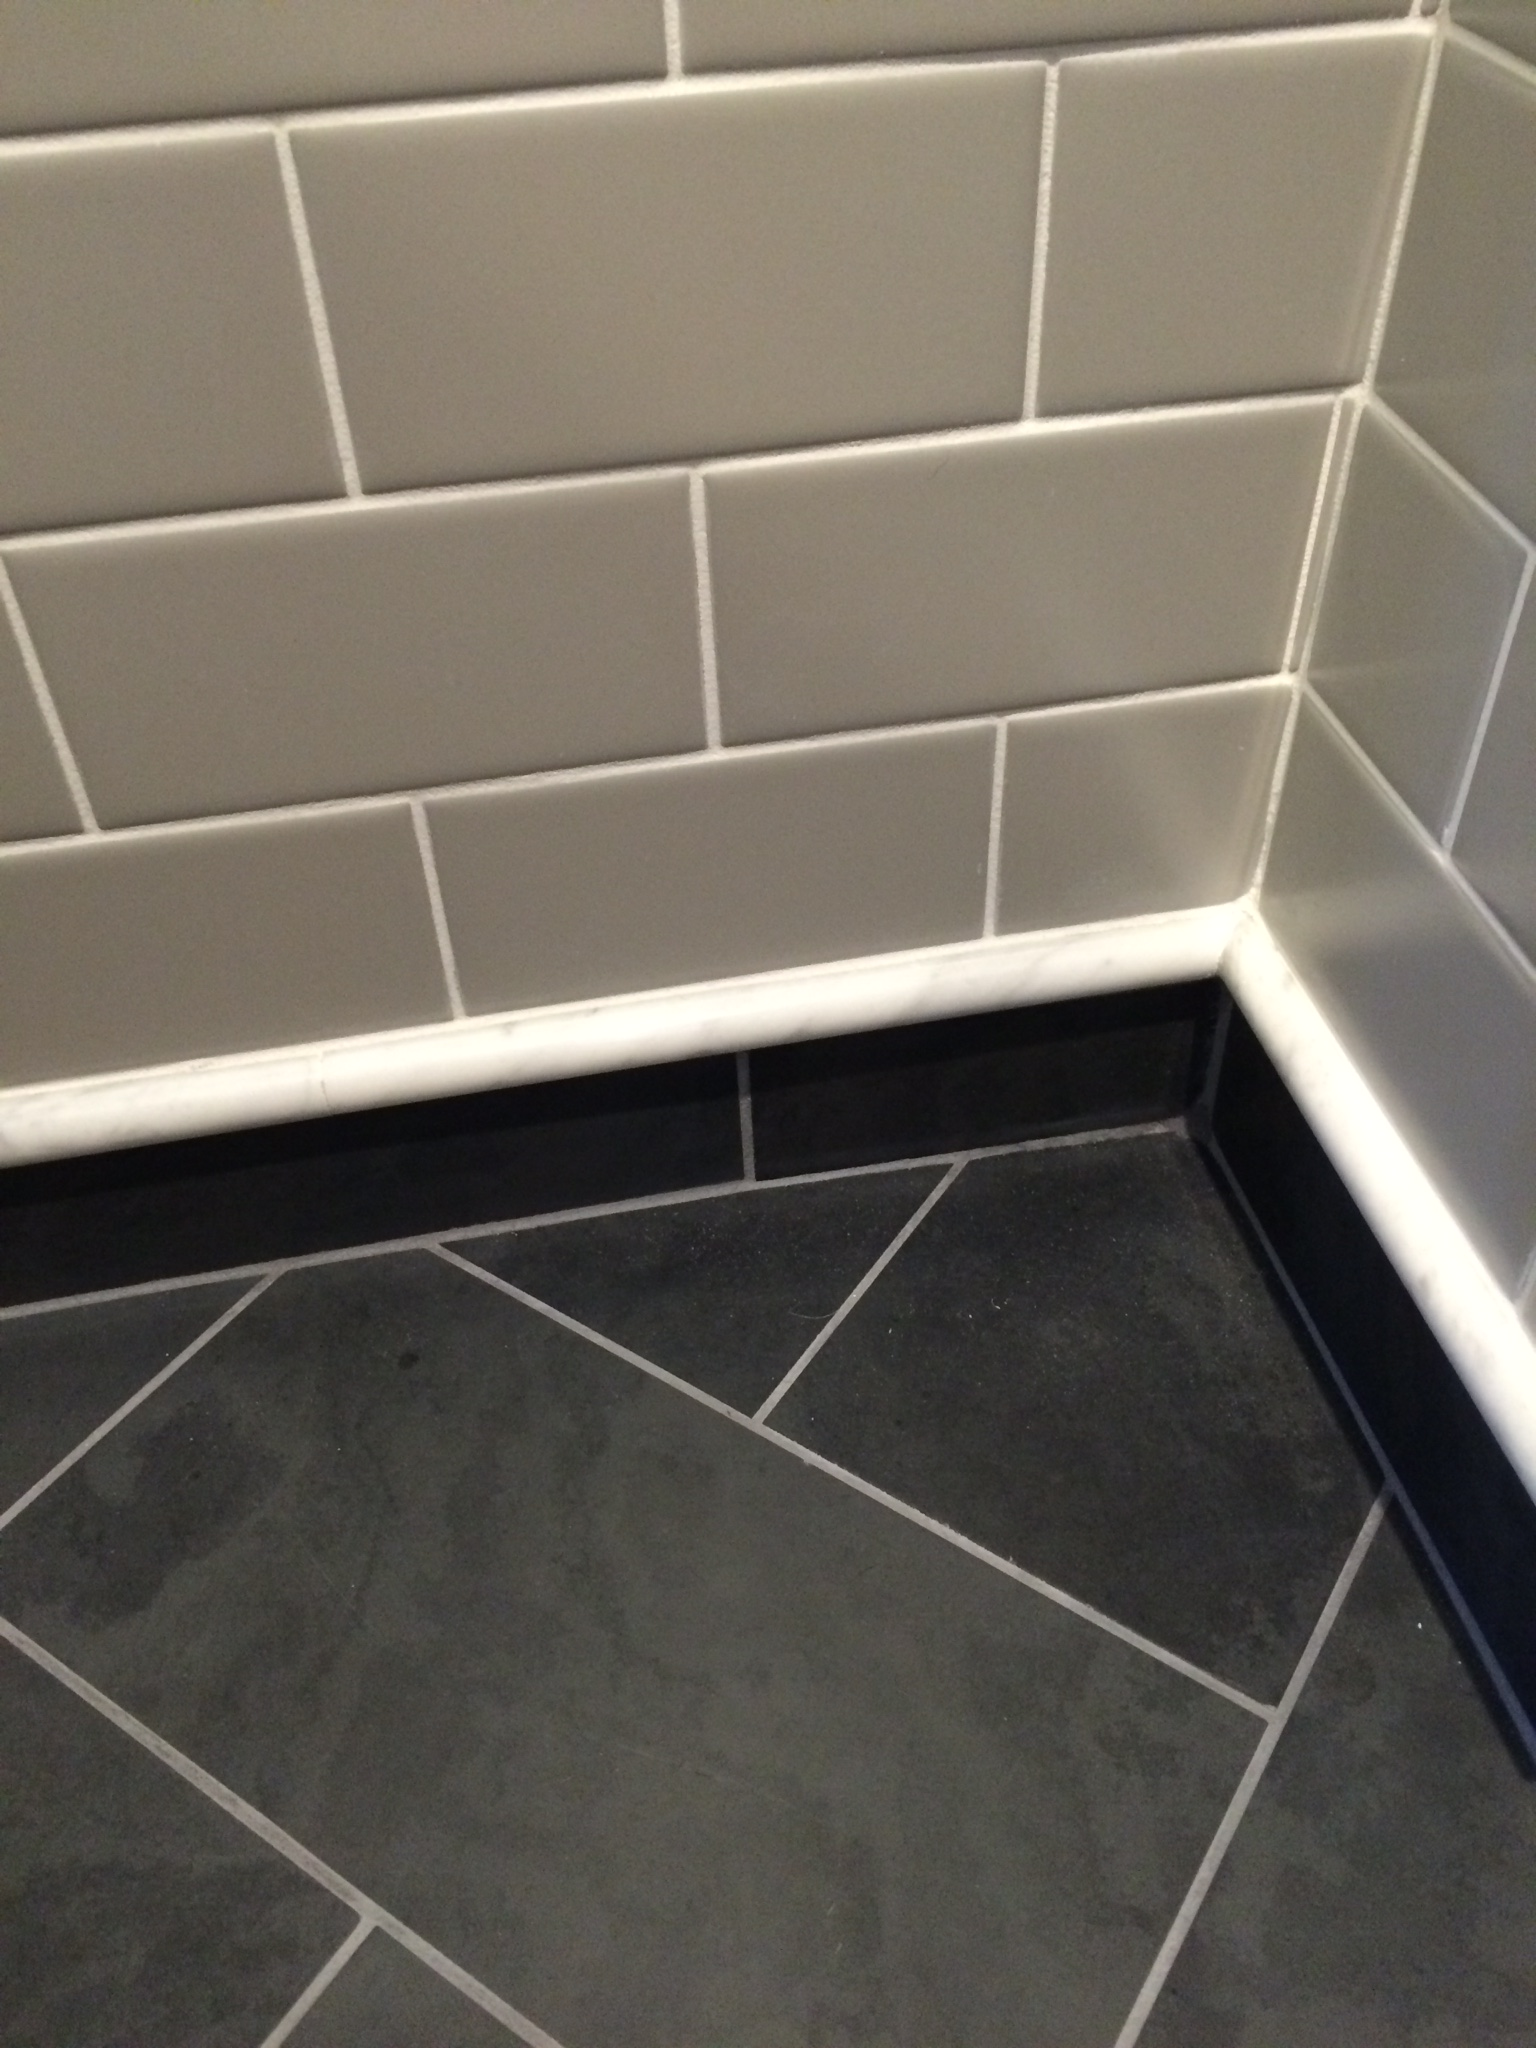 Wall Tile - Floor Tile - Bathroom